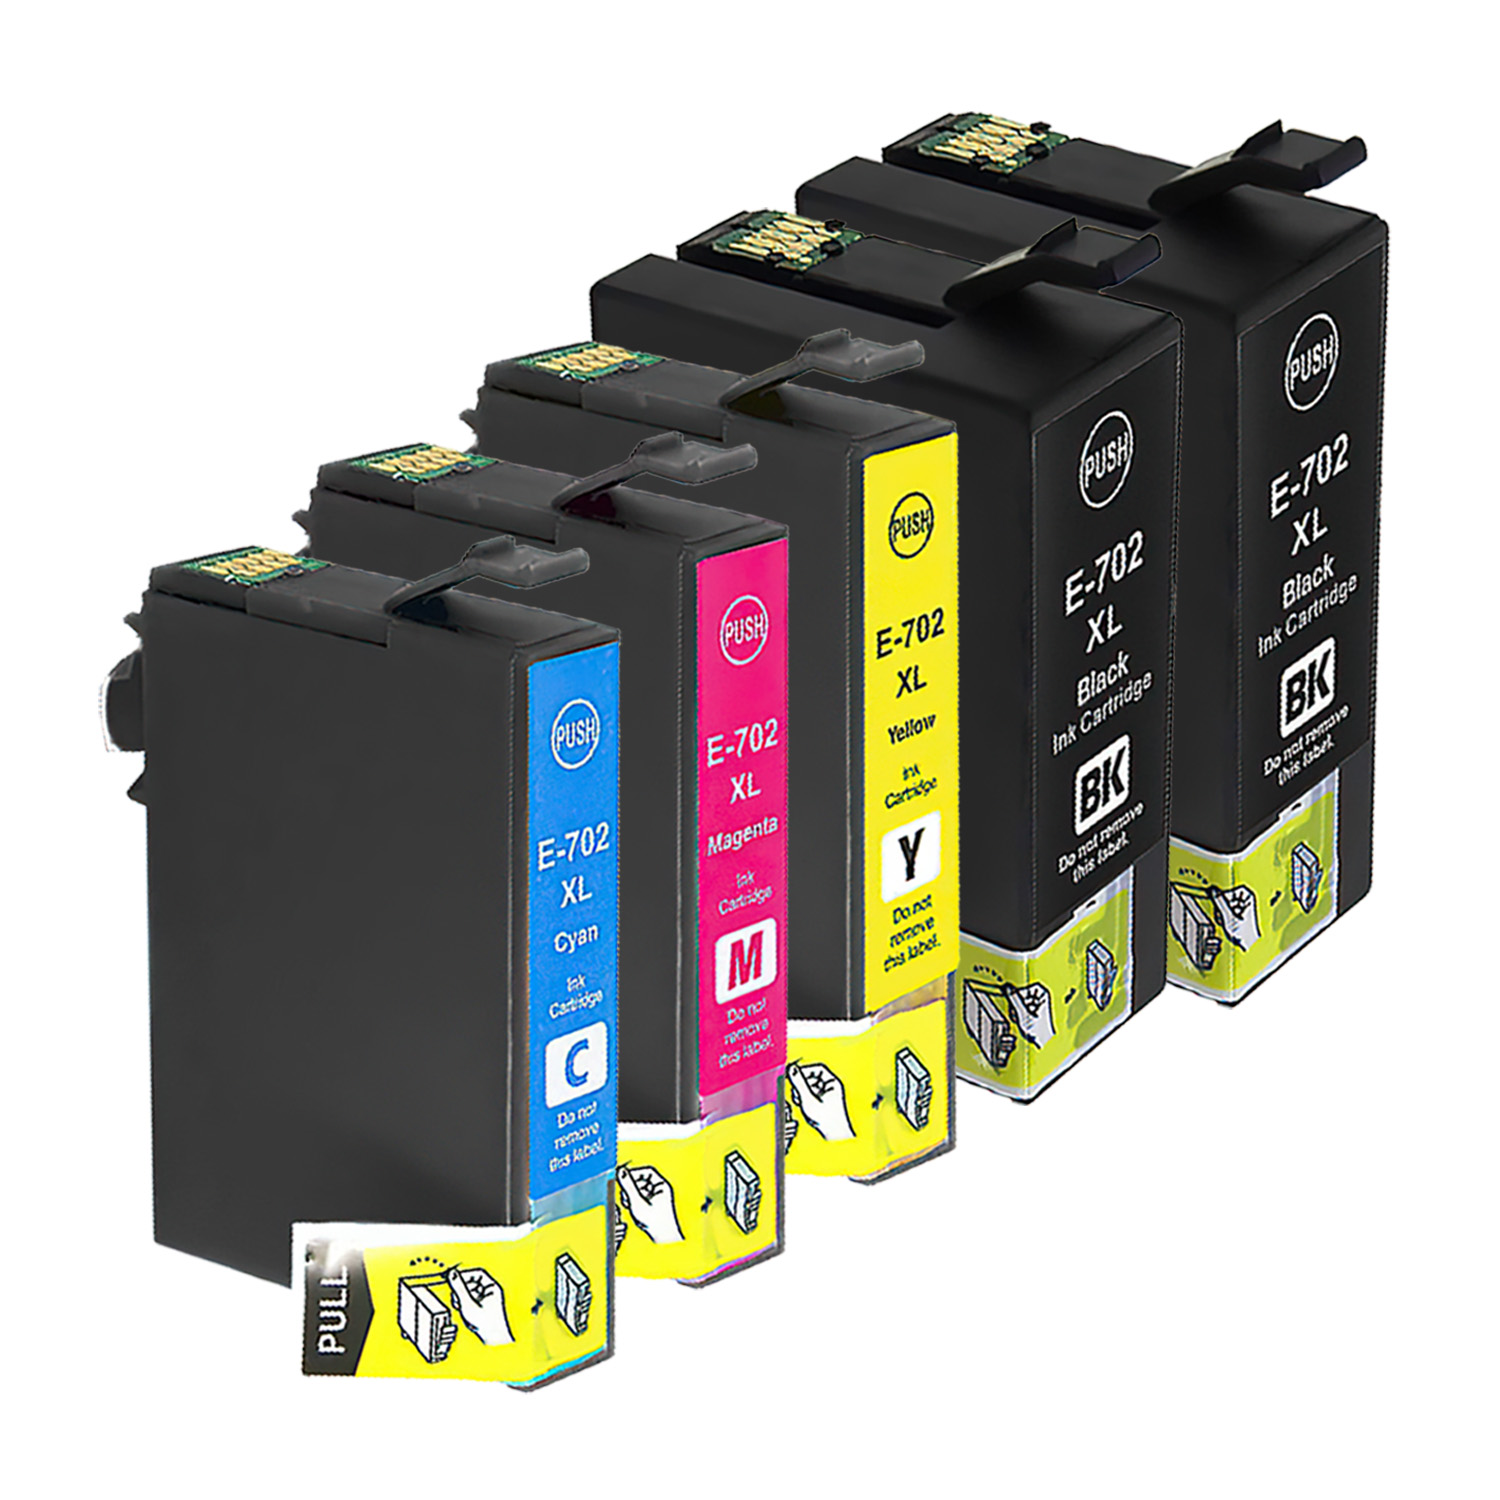 Compatible Epson 702XL Inkjet High Capacity Pack - 5 Cartridges